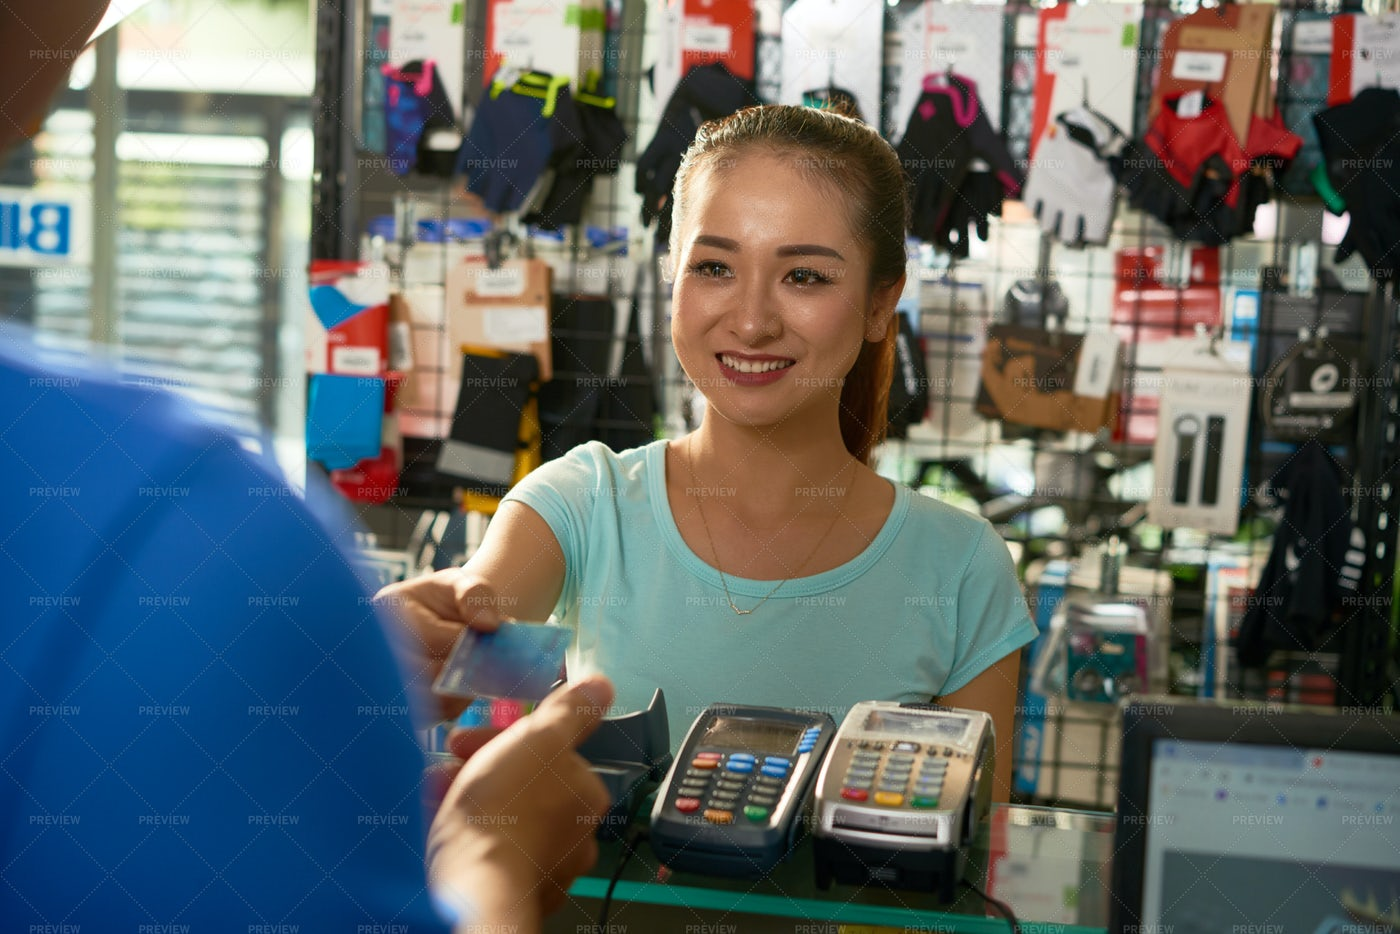 Customer Paying For Purchase With Card: Stock Photos